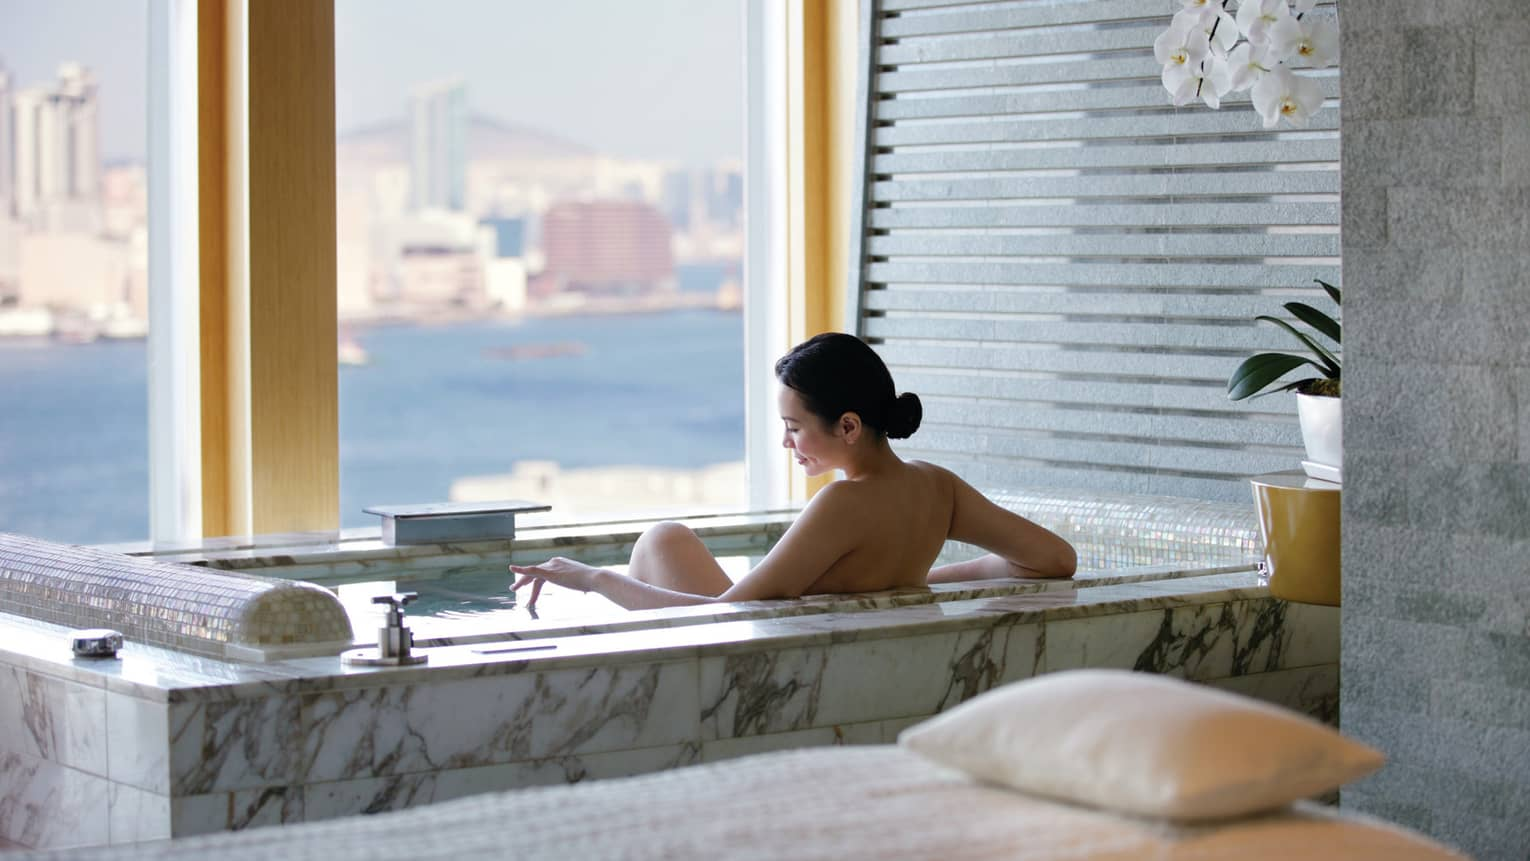 Woman's bare back above marble spa tub in tile bathroom by window with water, city views